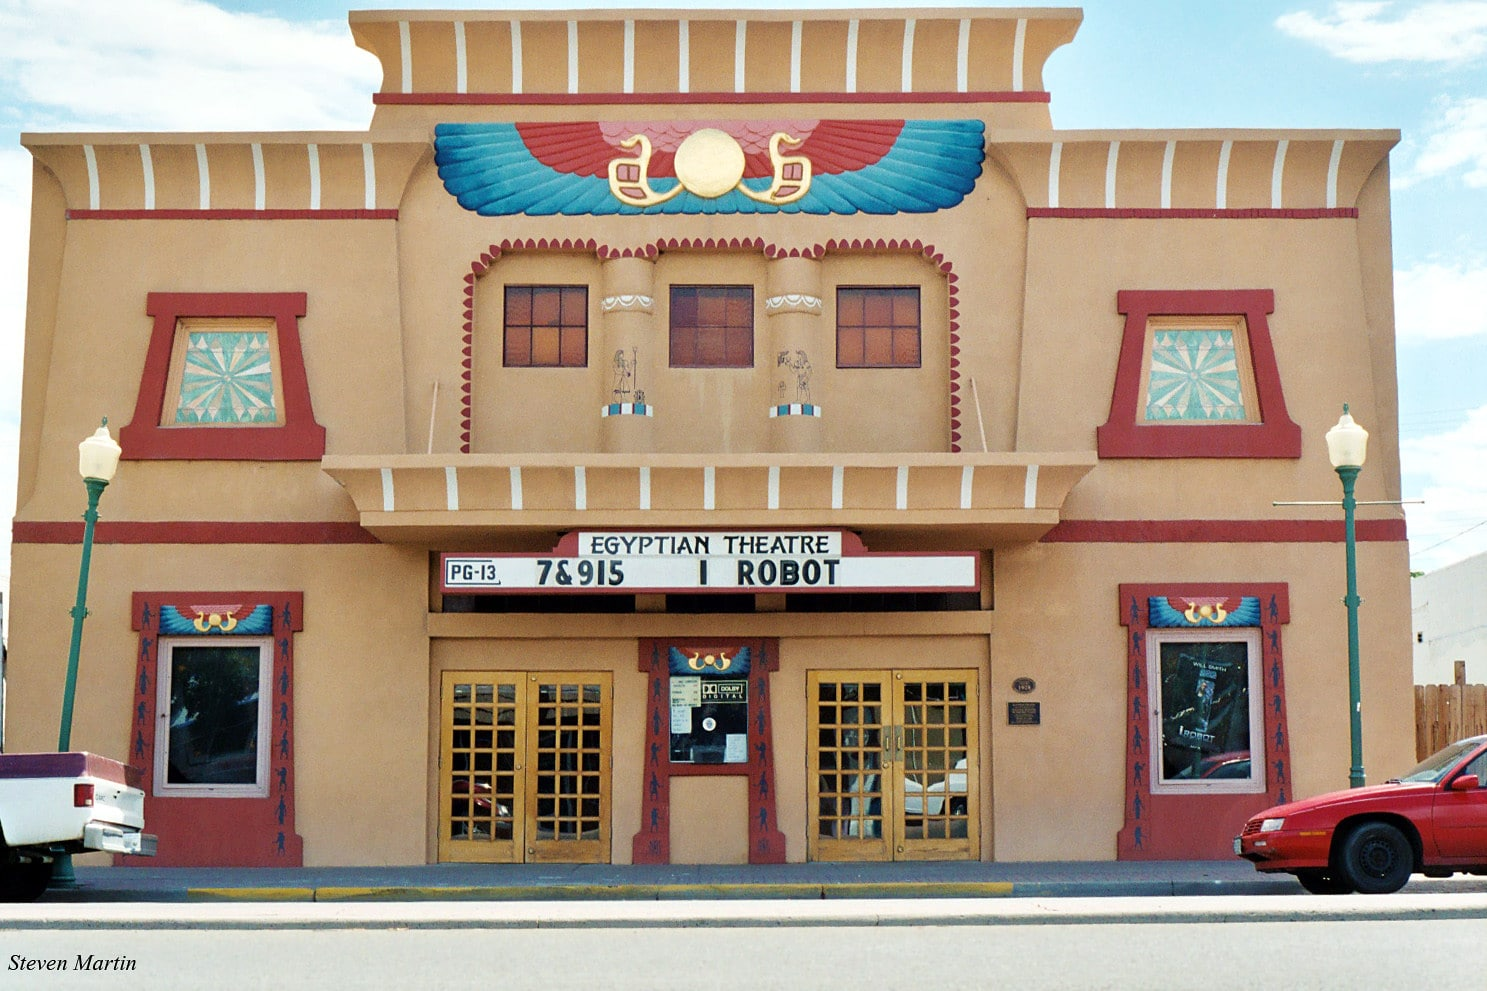 image of the egyptian theatre in delta